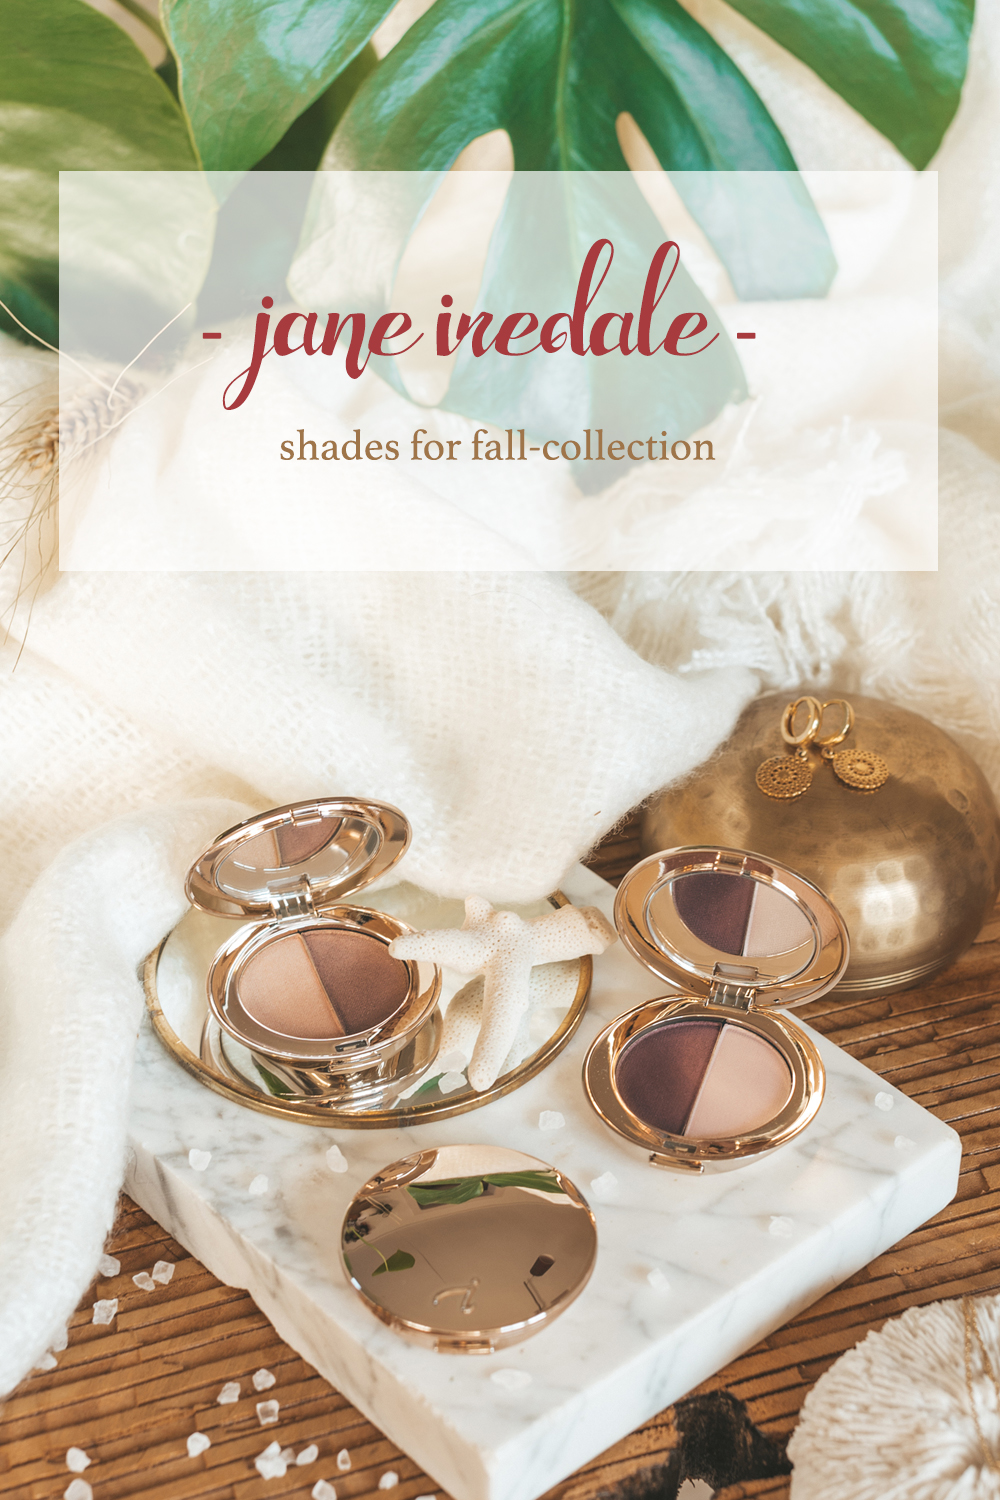 Shades for Fall-collectie jane iredale herfstcollectie 2018